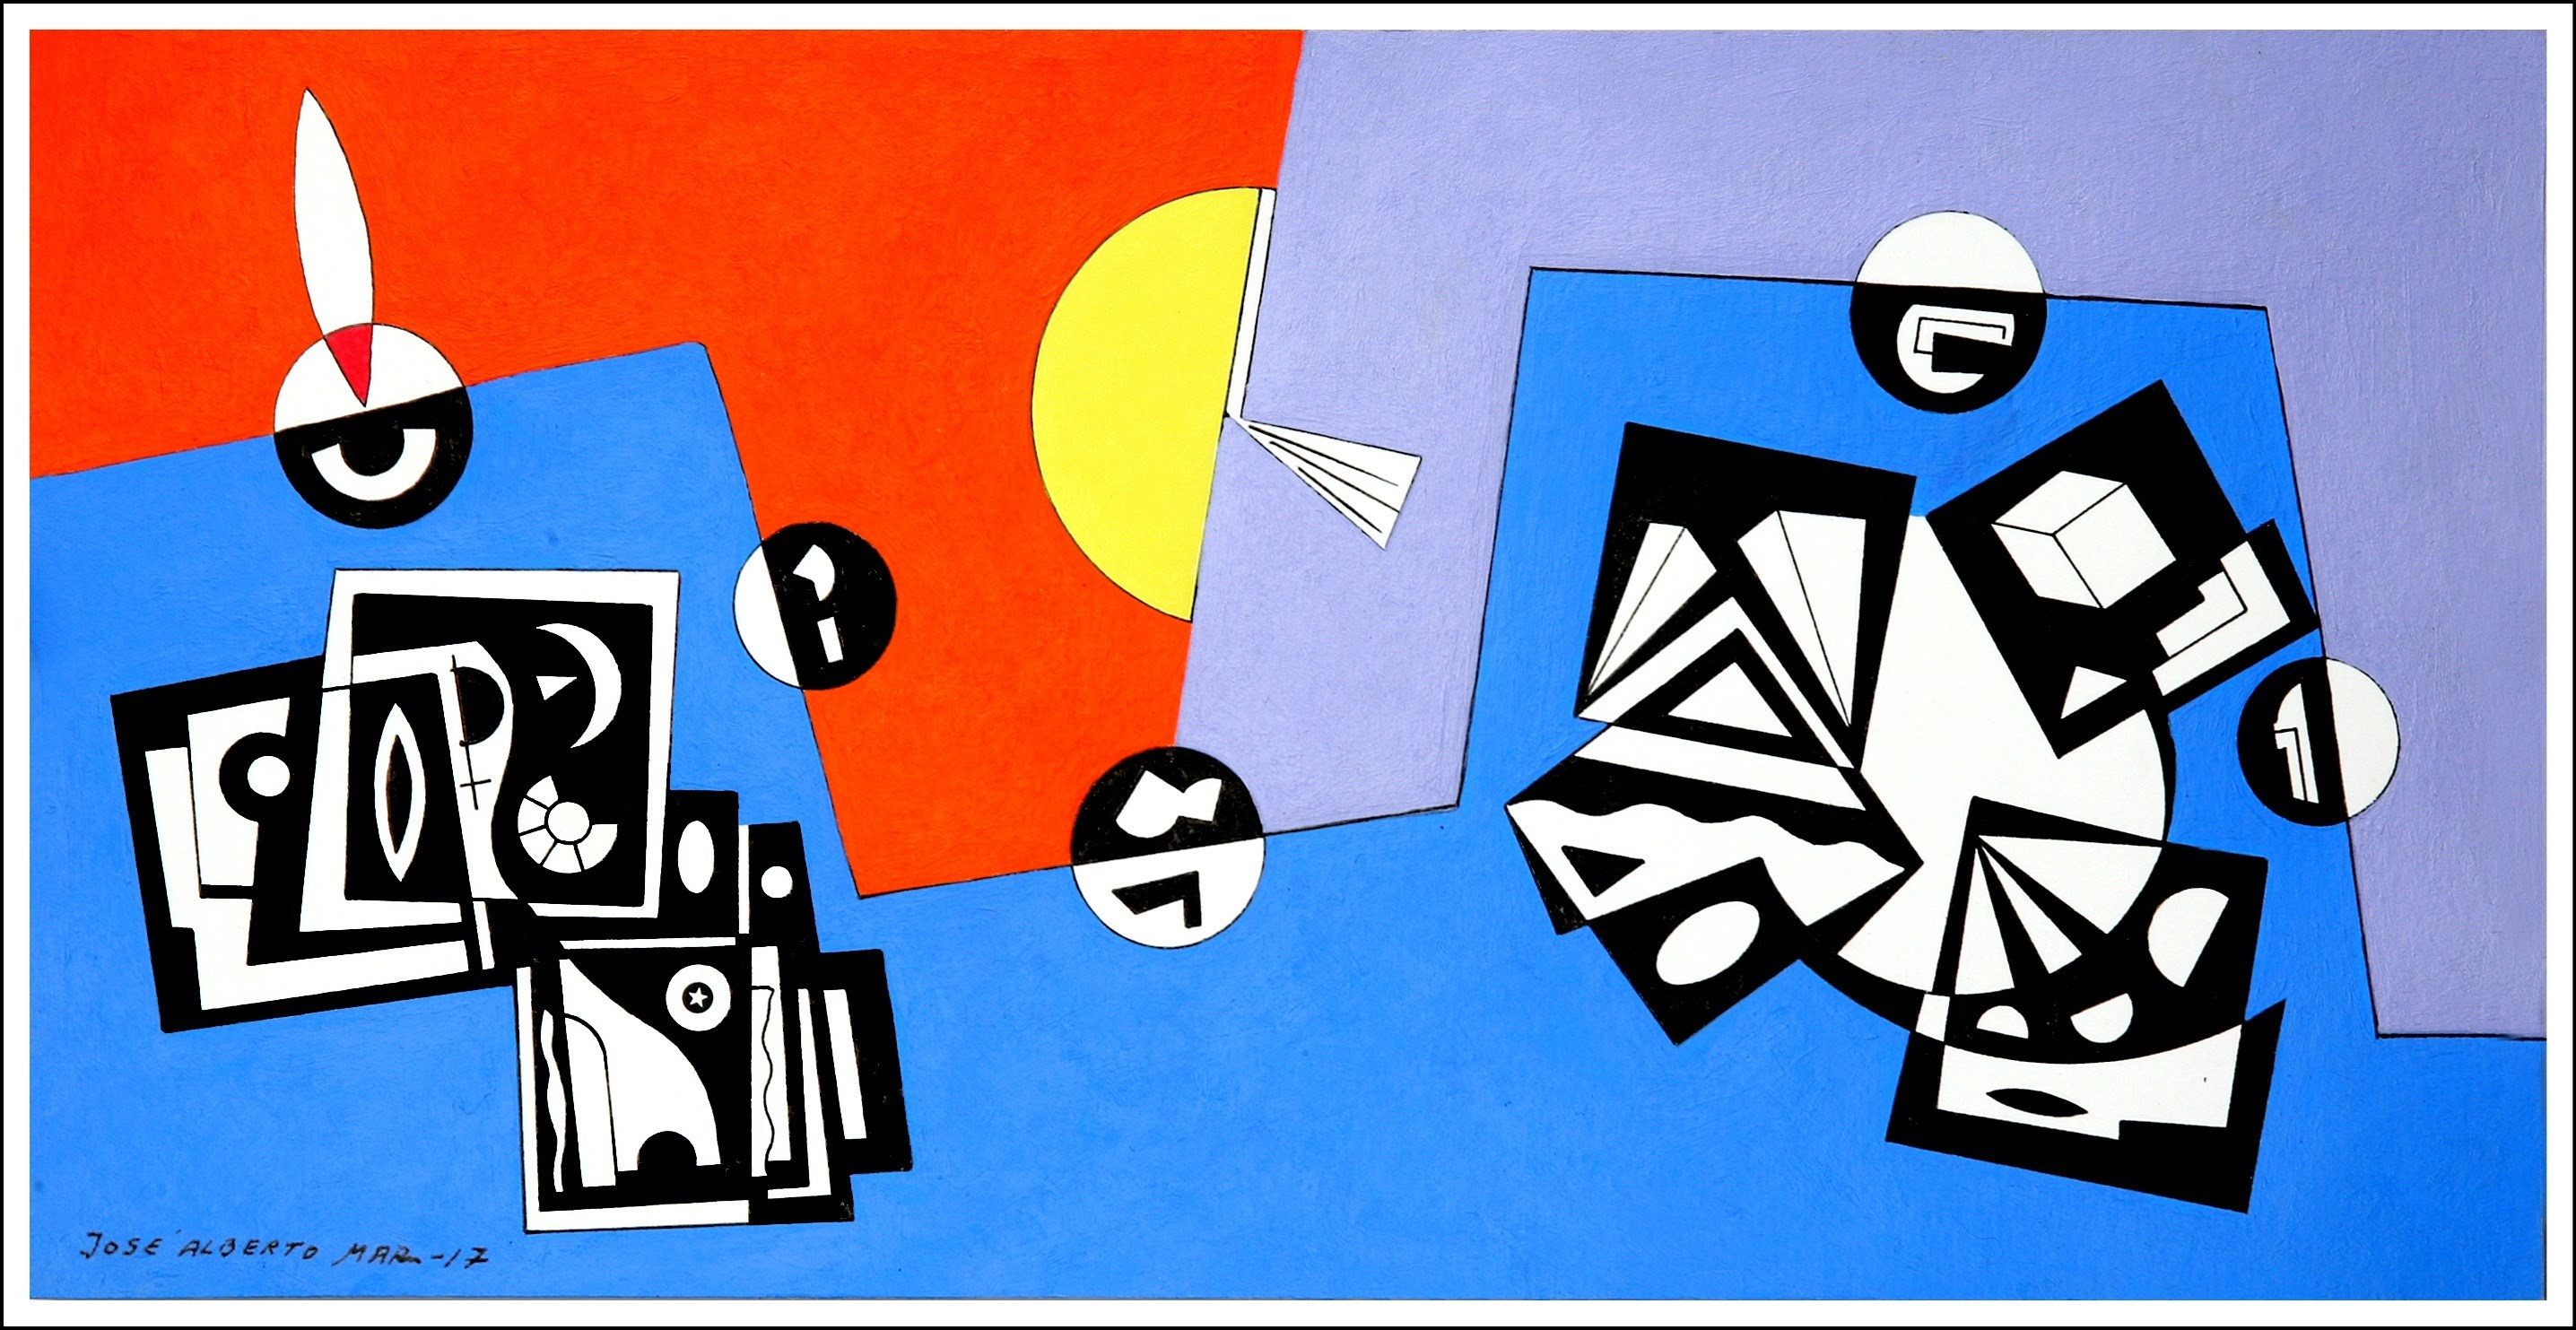 O Nascer do Sol.The Sunrise., original Geometric Acrylic Painting by José Alberto Mar